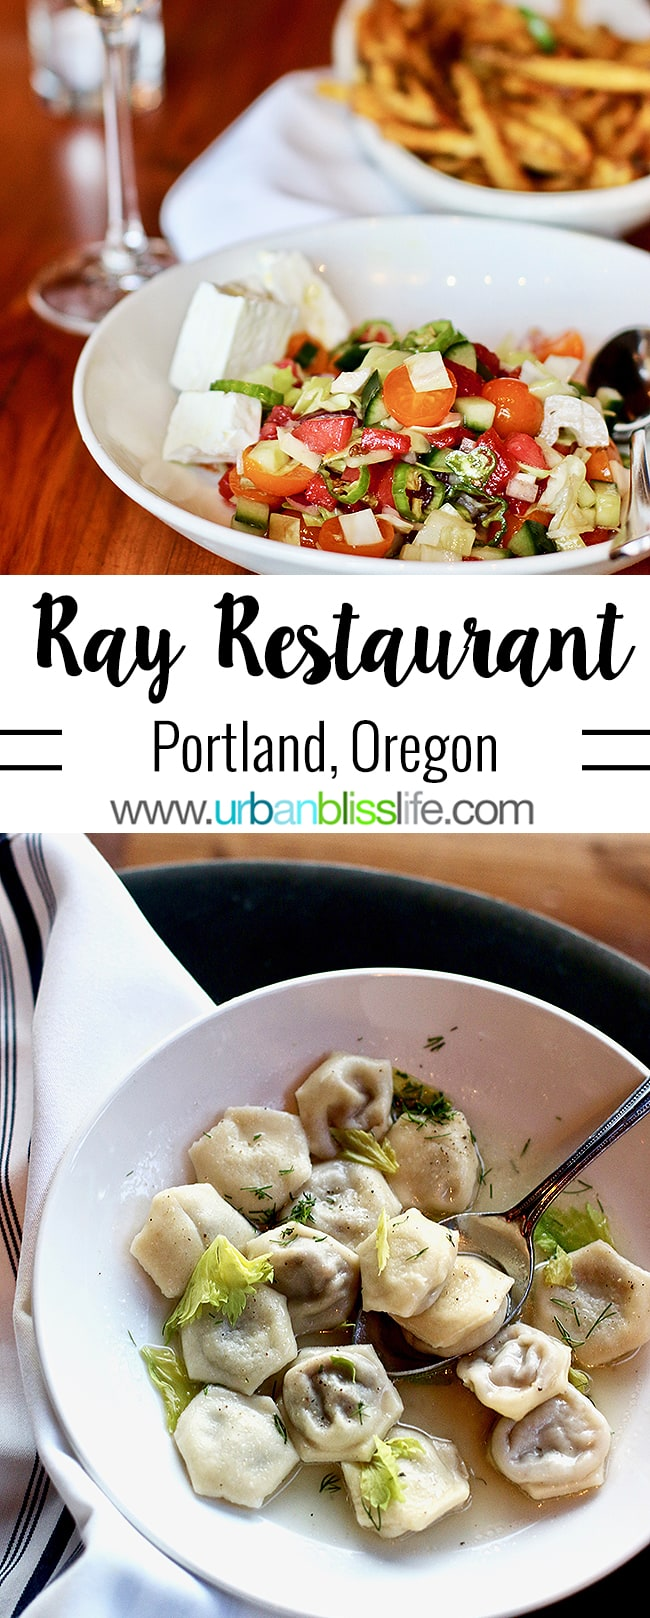 Ray restaurant, Israeli cuisine in Portland, Oregon. Restaurant review on UrbanBlissLife.com